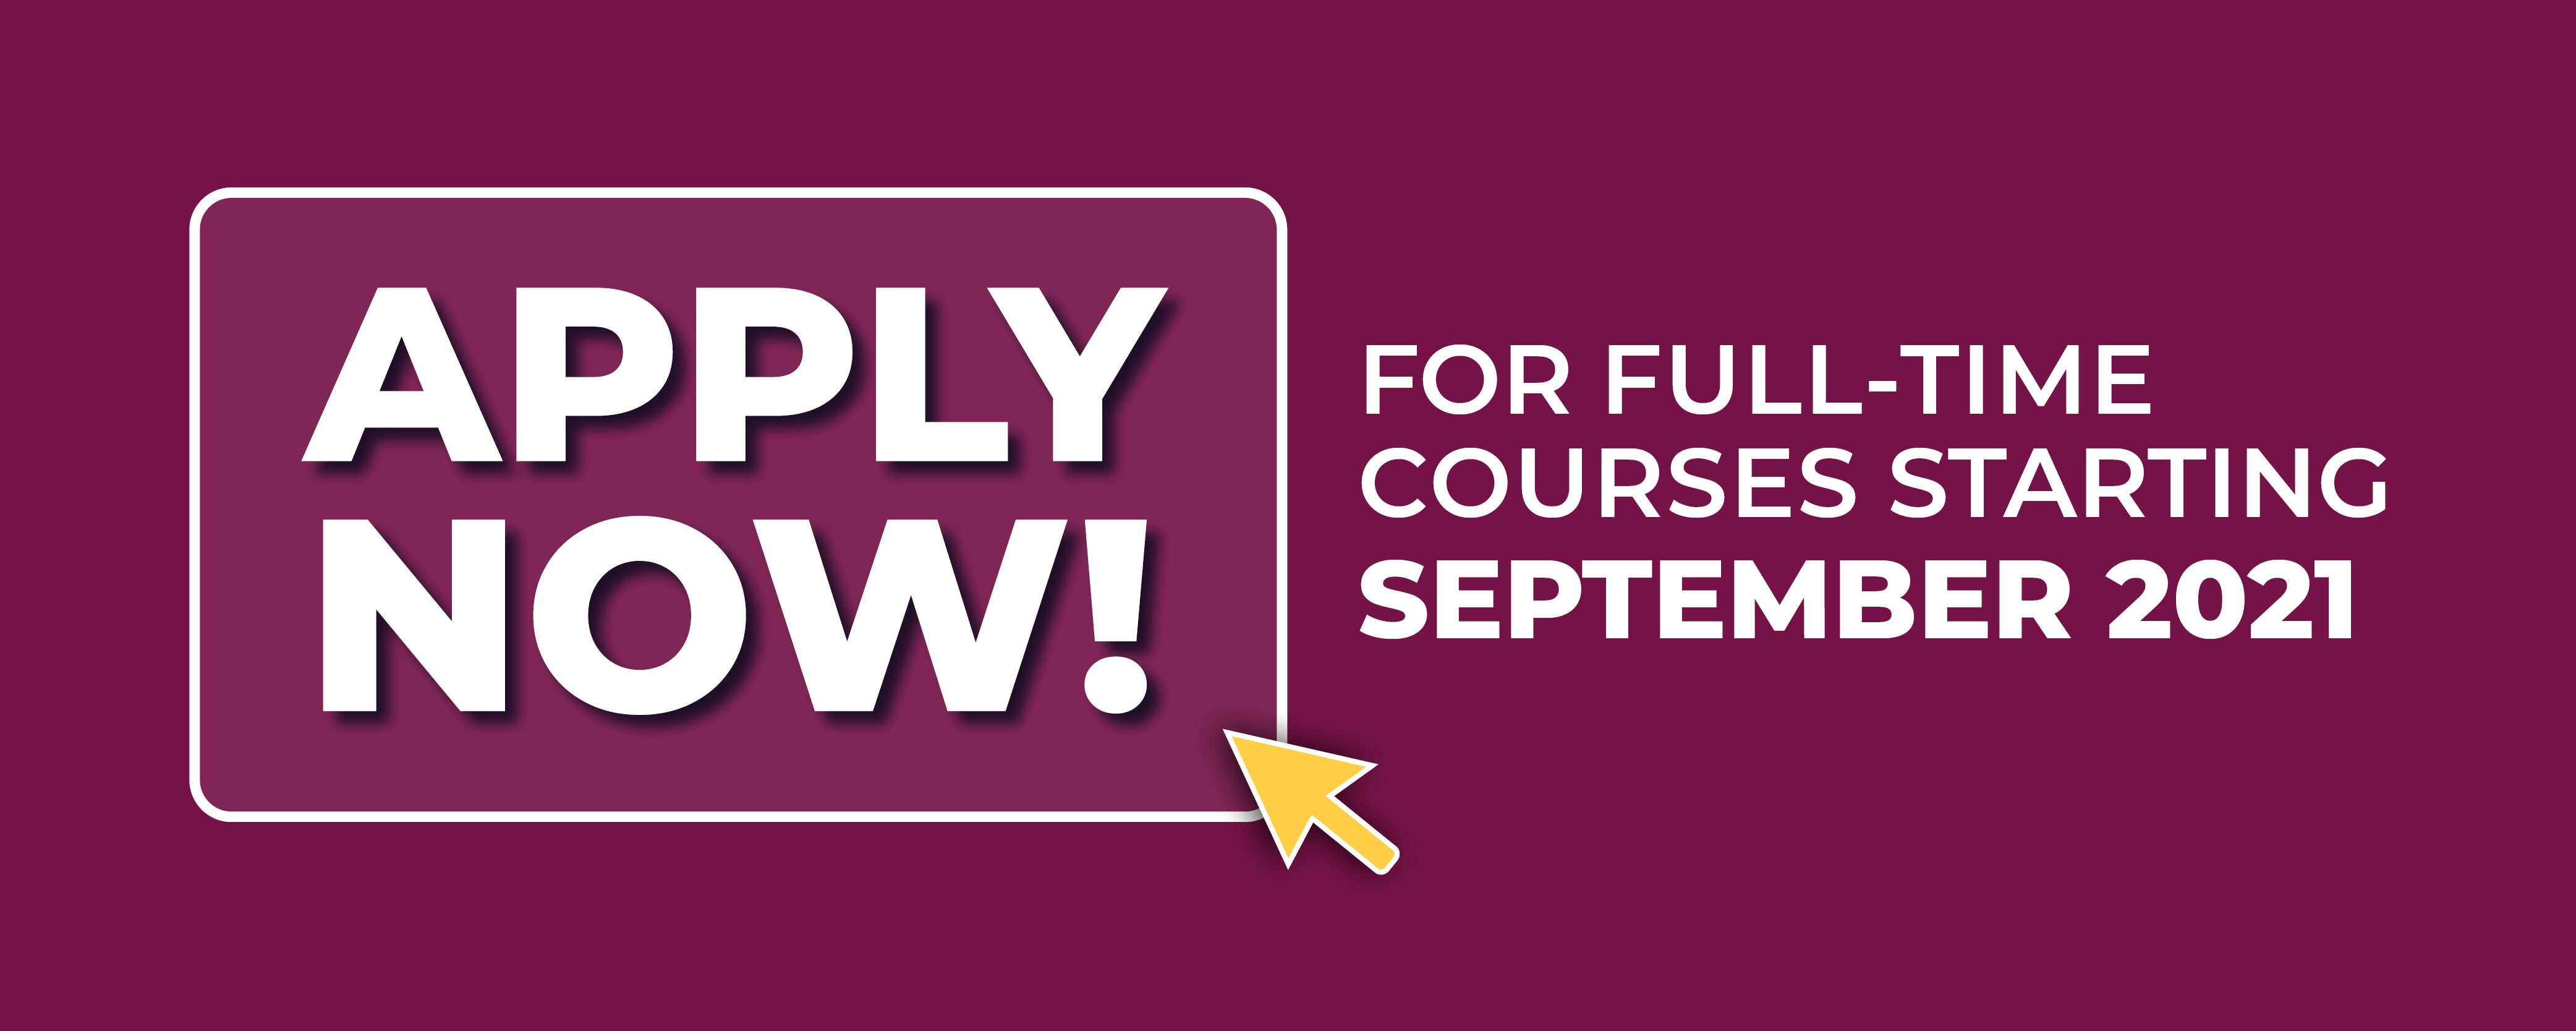 Image displays text which says Apply now for full-time courses starting September 2021